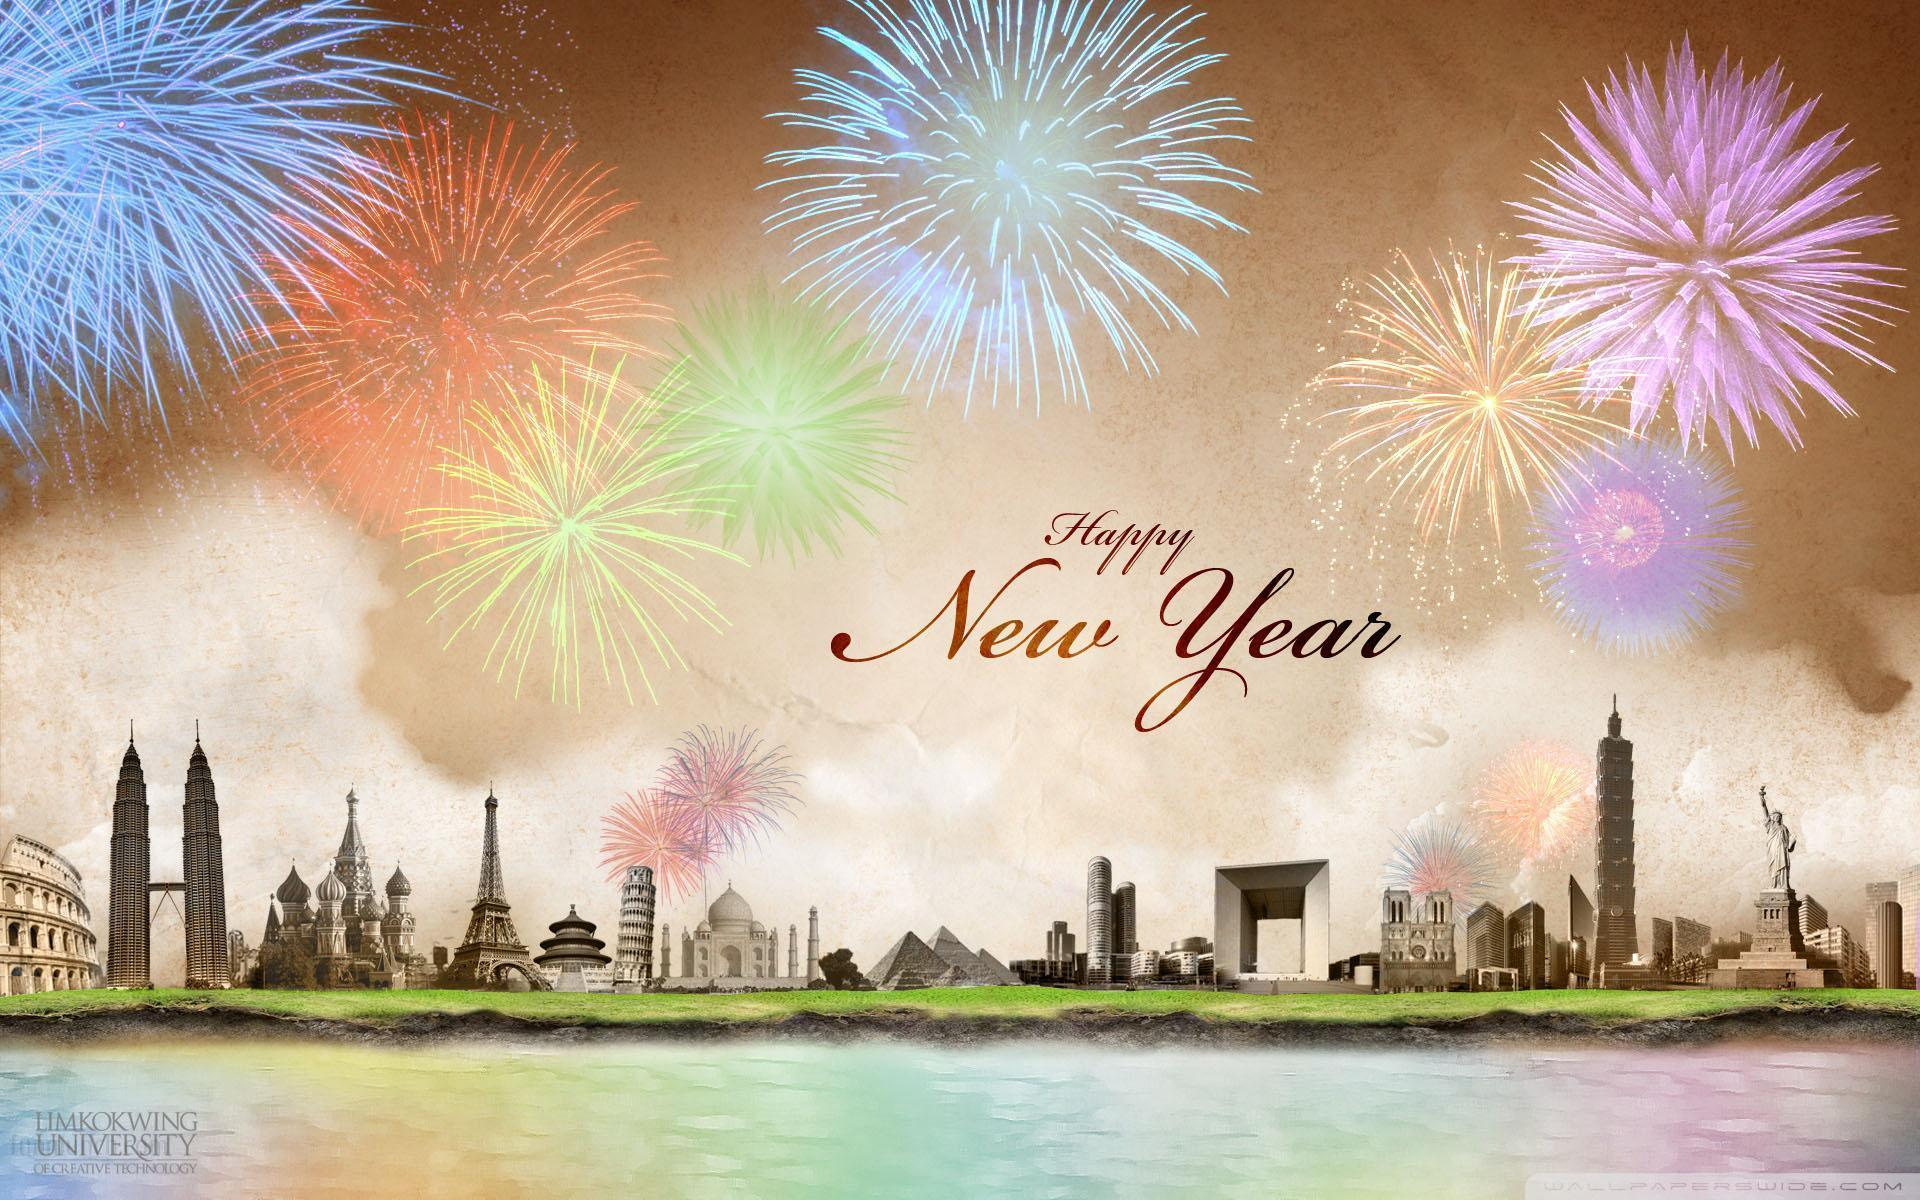 happy new year wallpaper download zem wallpaper is the best